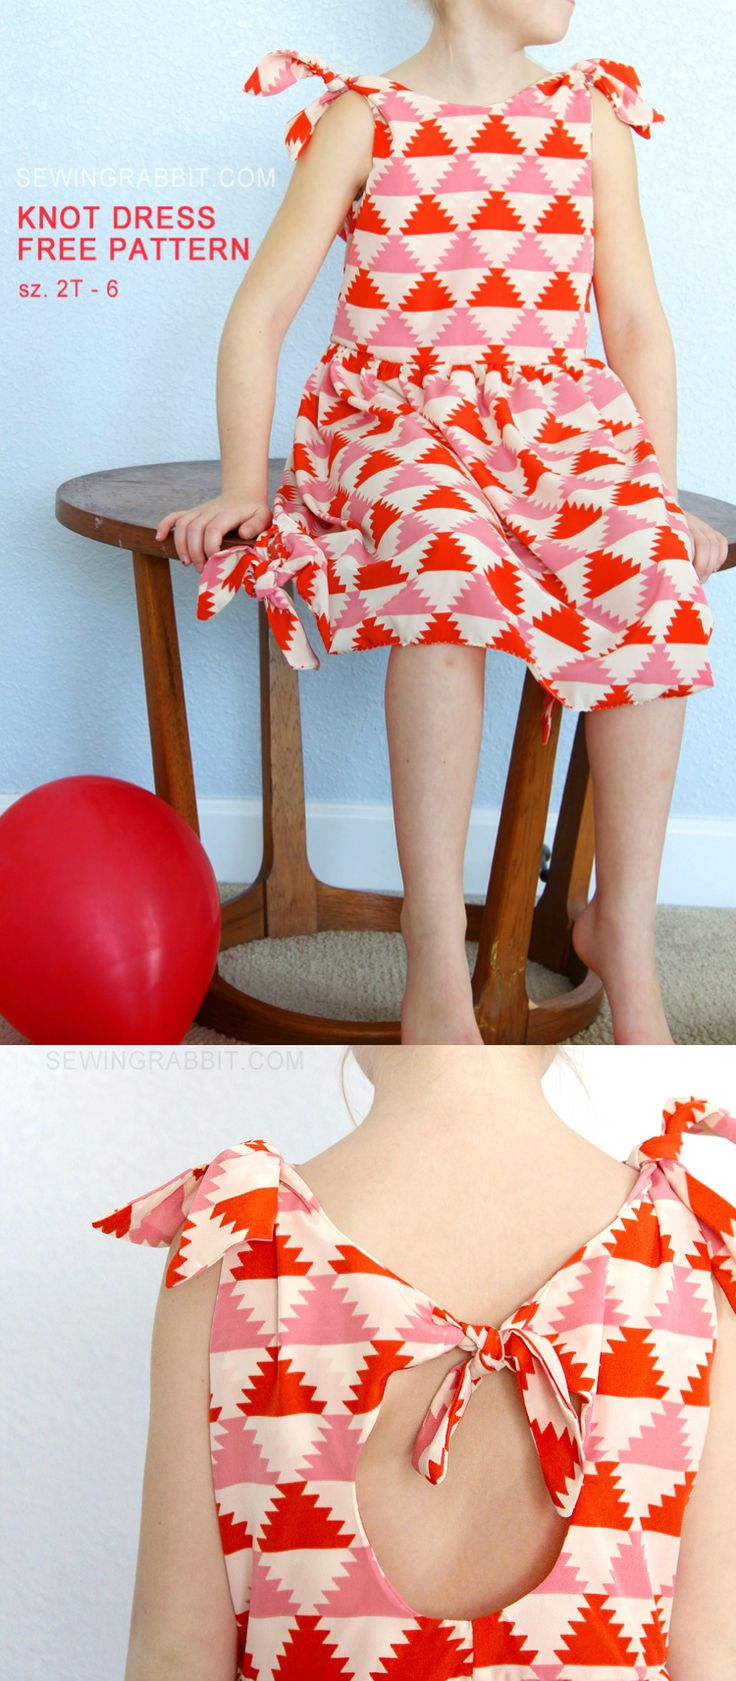 Free Girls Dress Pattern, perfect for that handmade Easter Dress!